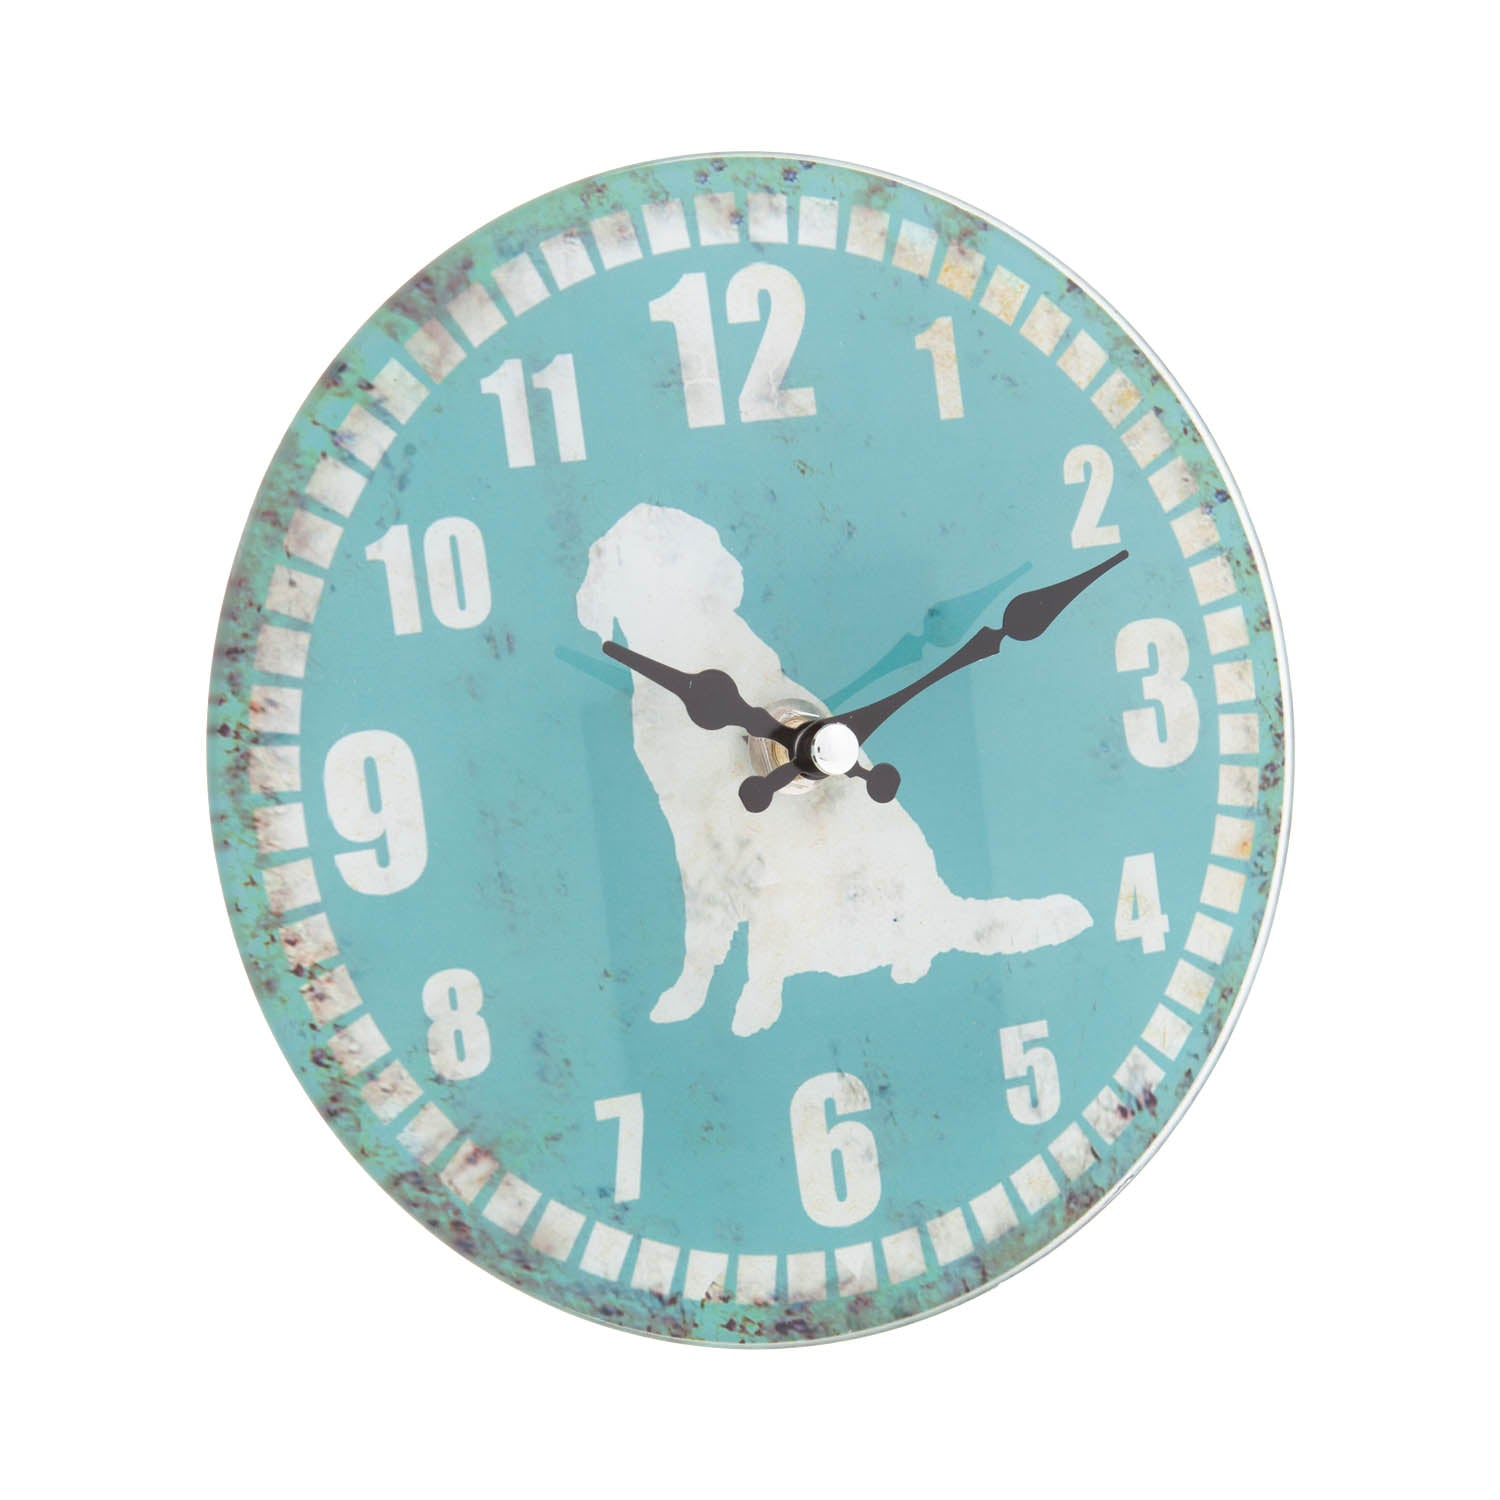 DogKrazyGifts - Golden Retriever Shabby Chic Glass Clock, part of the Golden Retriever range available from DogKrazyGifts.co.uk